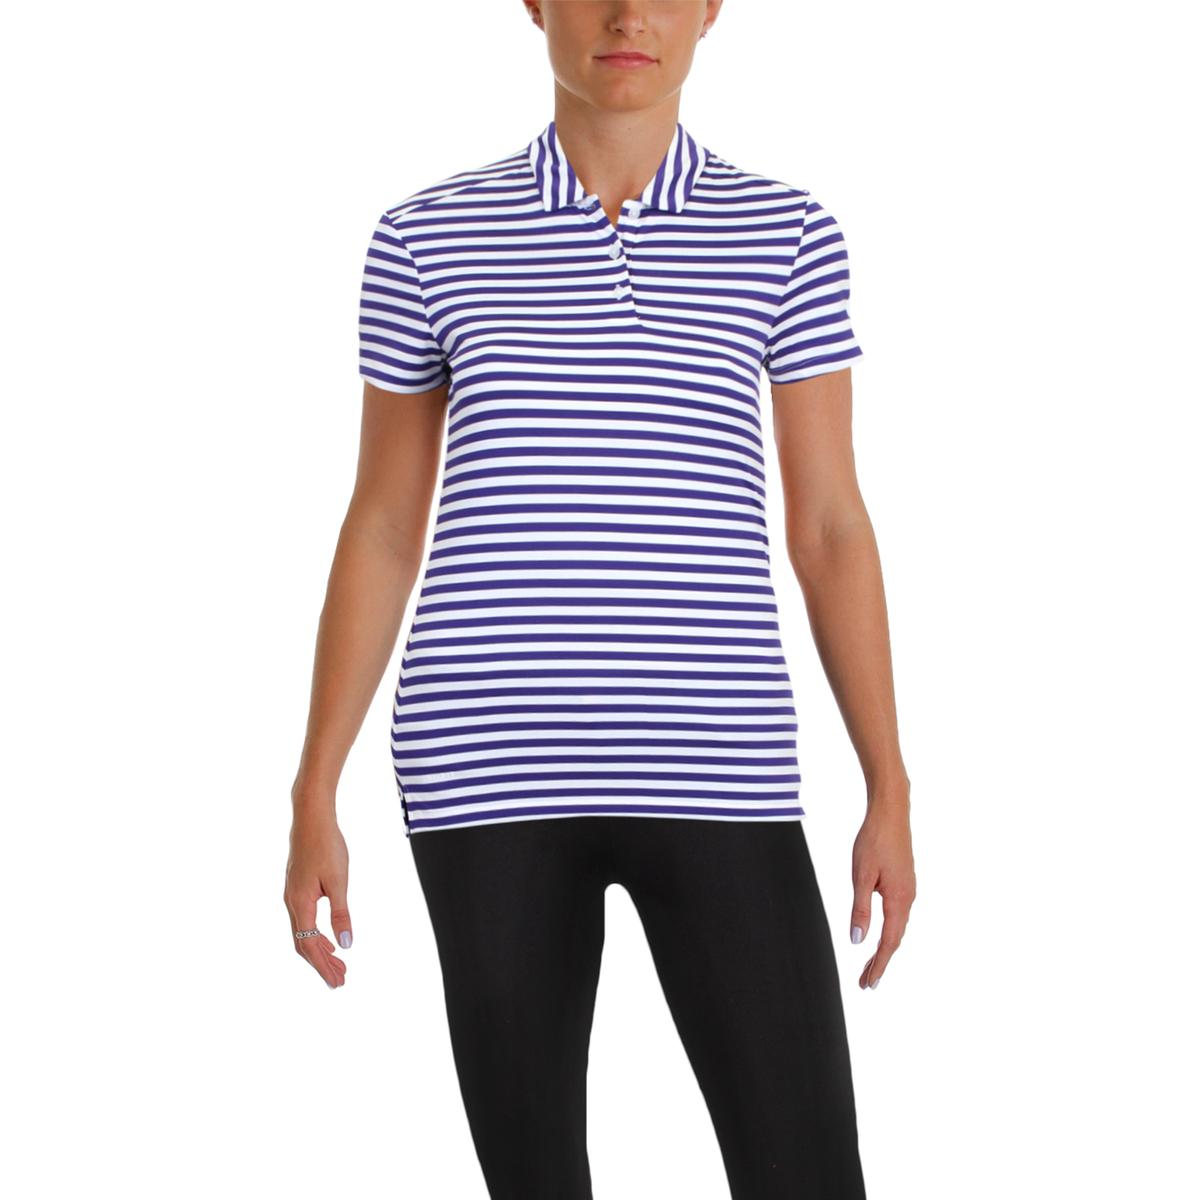 huge sale arriving special section Details about Nike Womens Purple Fitness Active Golf Polo Athletic XS BHFO  2396